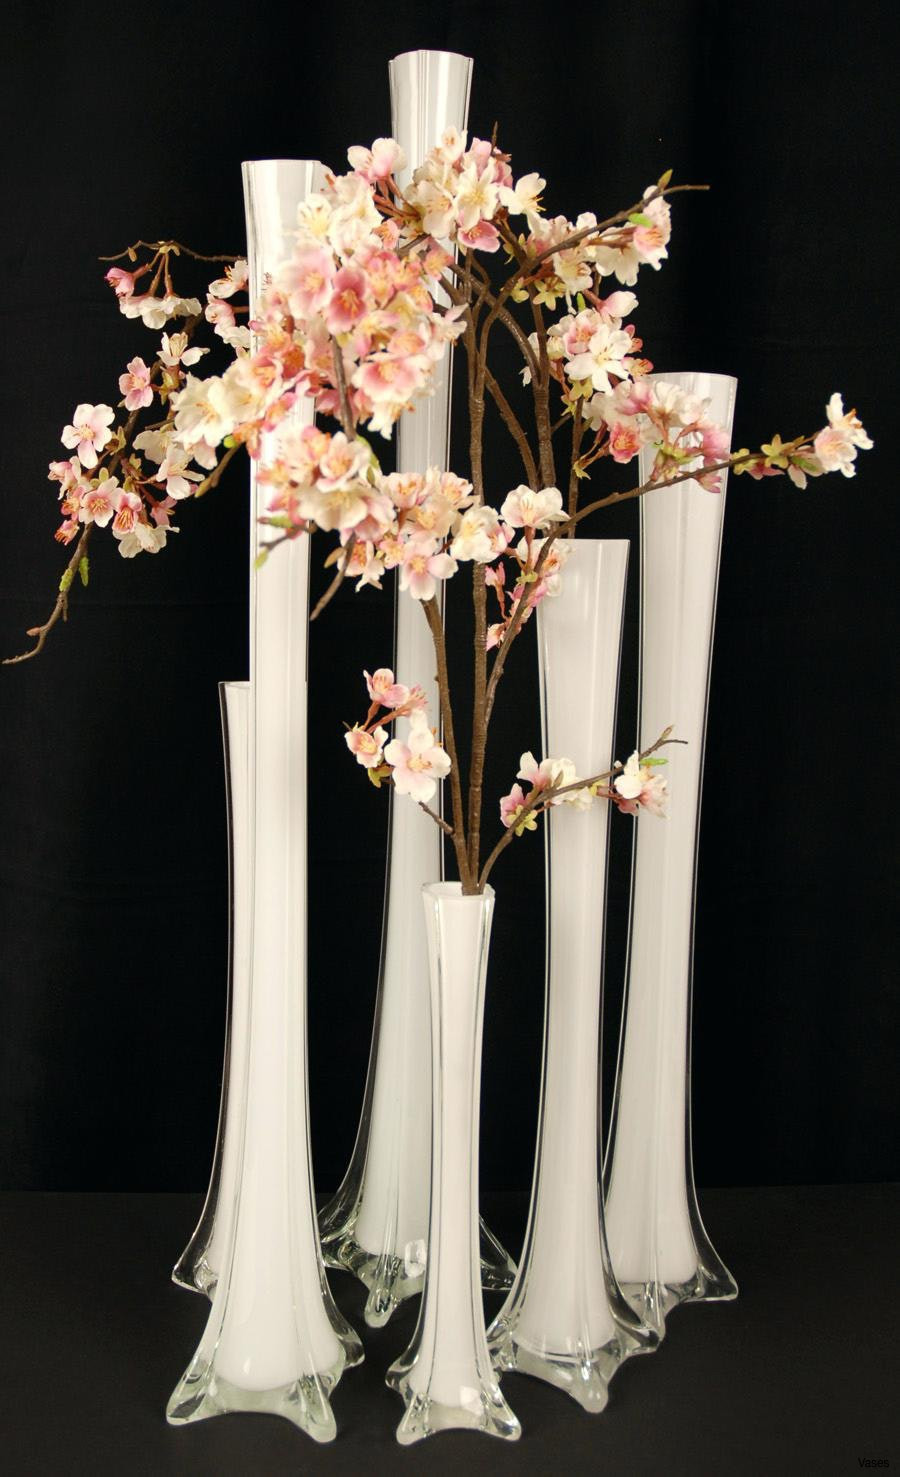 plastic vases wholesale of vases plastic tower eiffel vase 31 25in frostedi 0d with led light within vases plastic tower eiffel vase 31 25in frostedi 0d with led light according to luxury wedding a